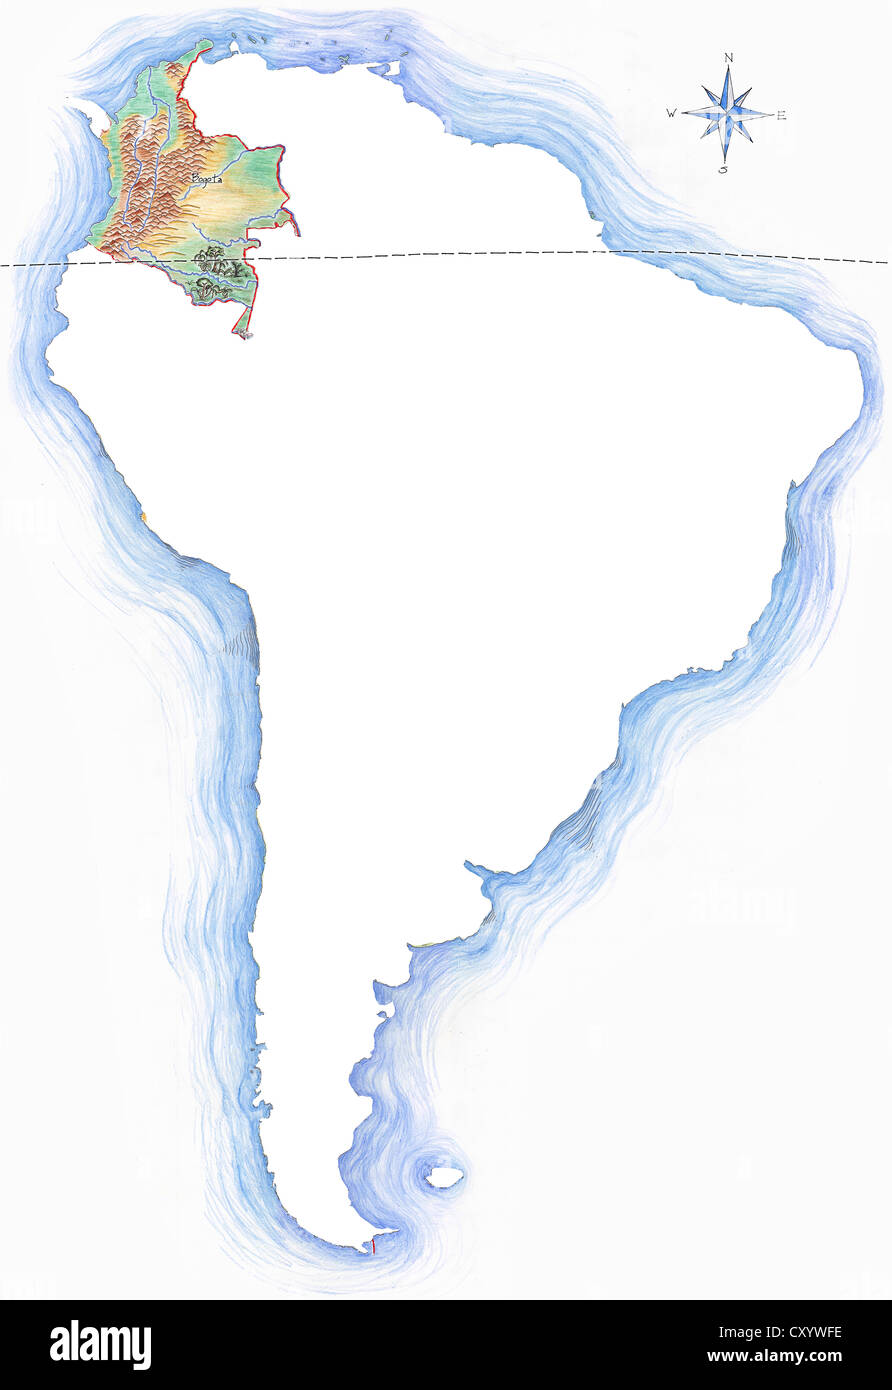 Highly Detailed Handdrawn Map Of Colombia Within The Outline Of - South america map outline